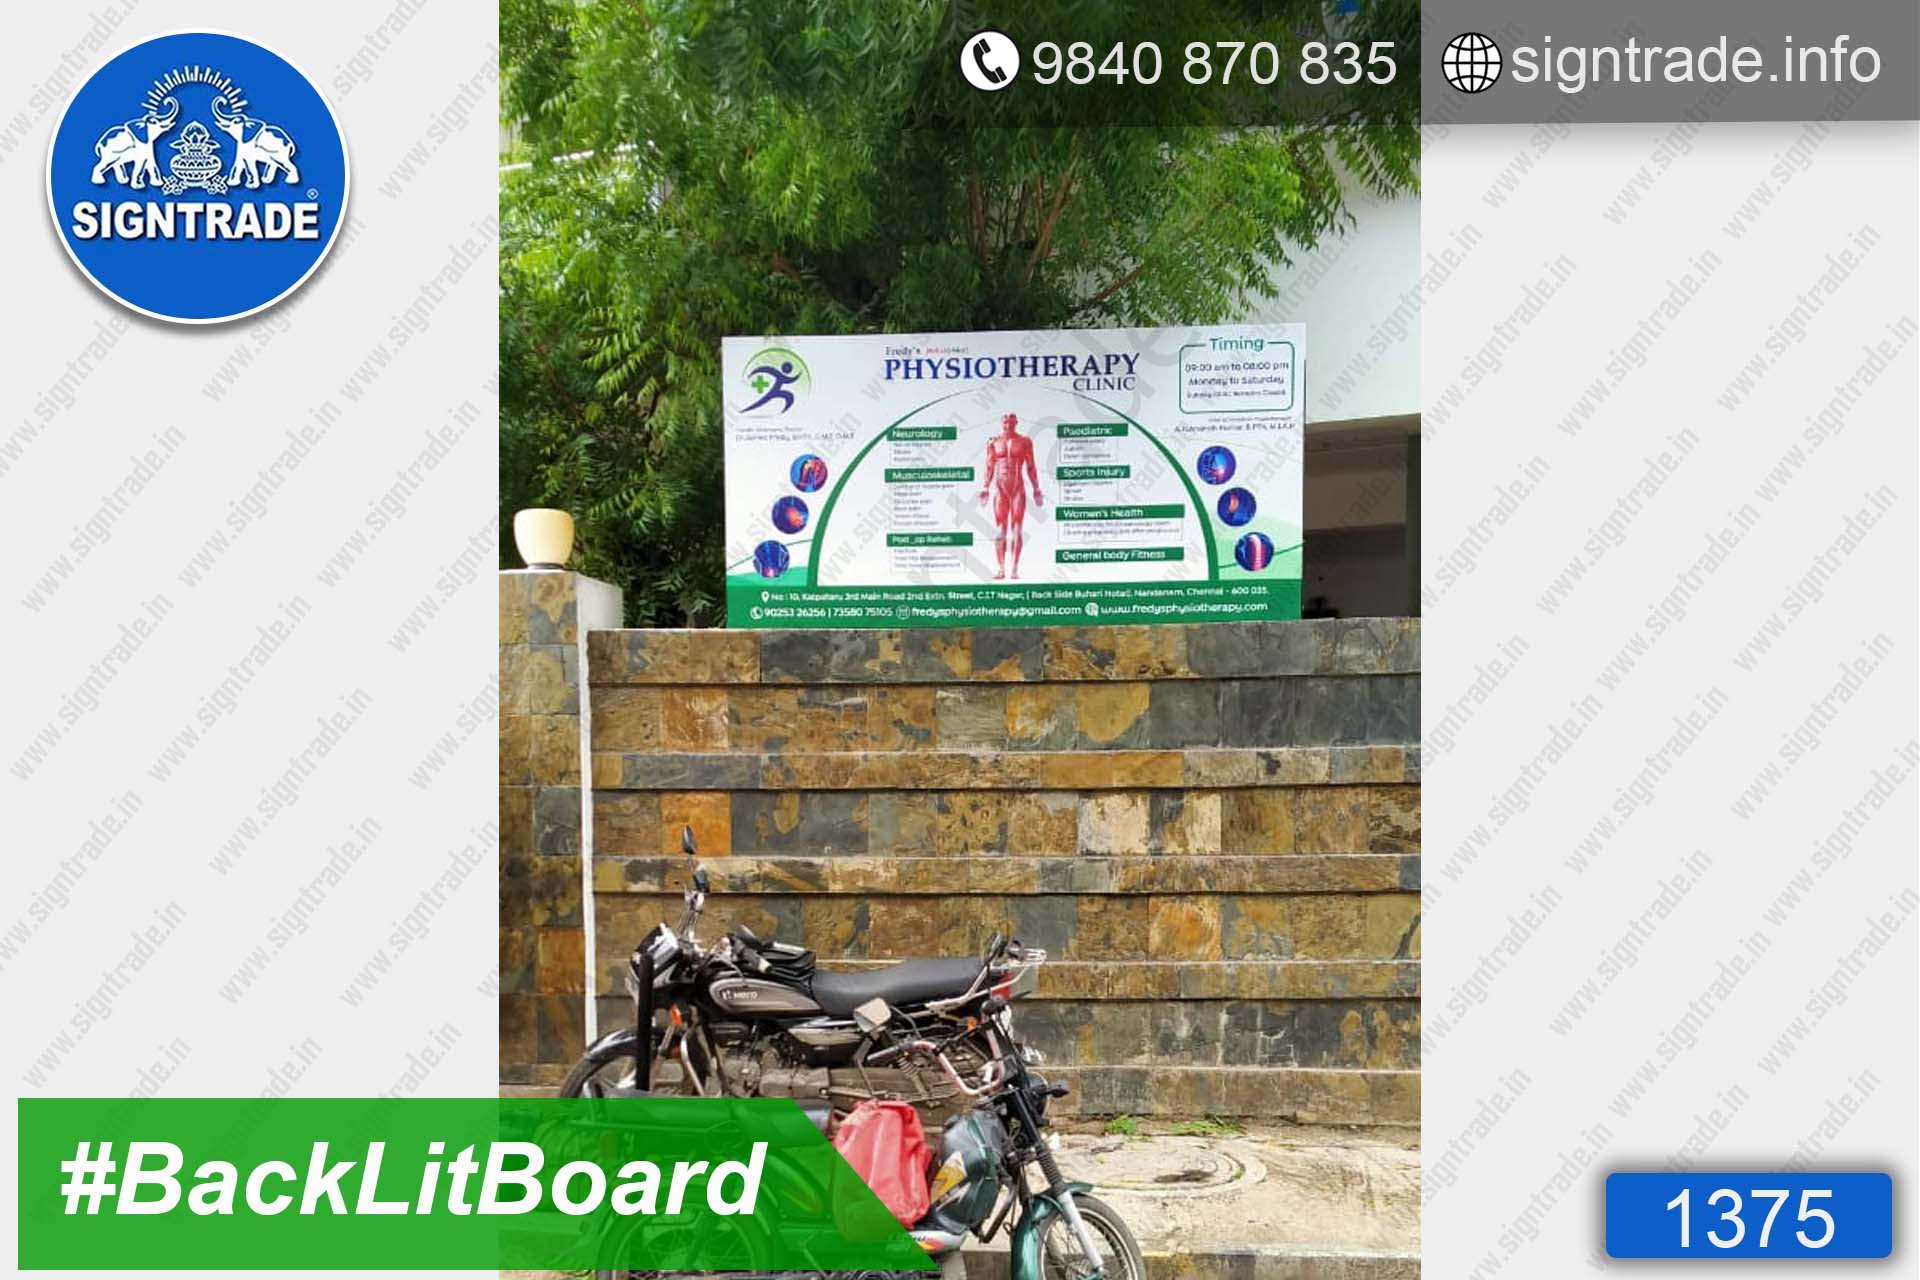 Physiotherapy Clinic - Chennai - SIGNTRADE - Backlit Flex Board - Digital Printing Services in Chennai